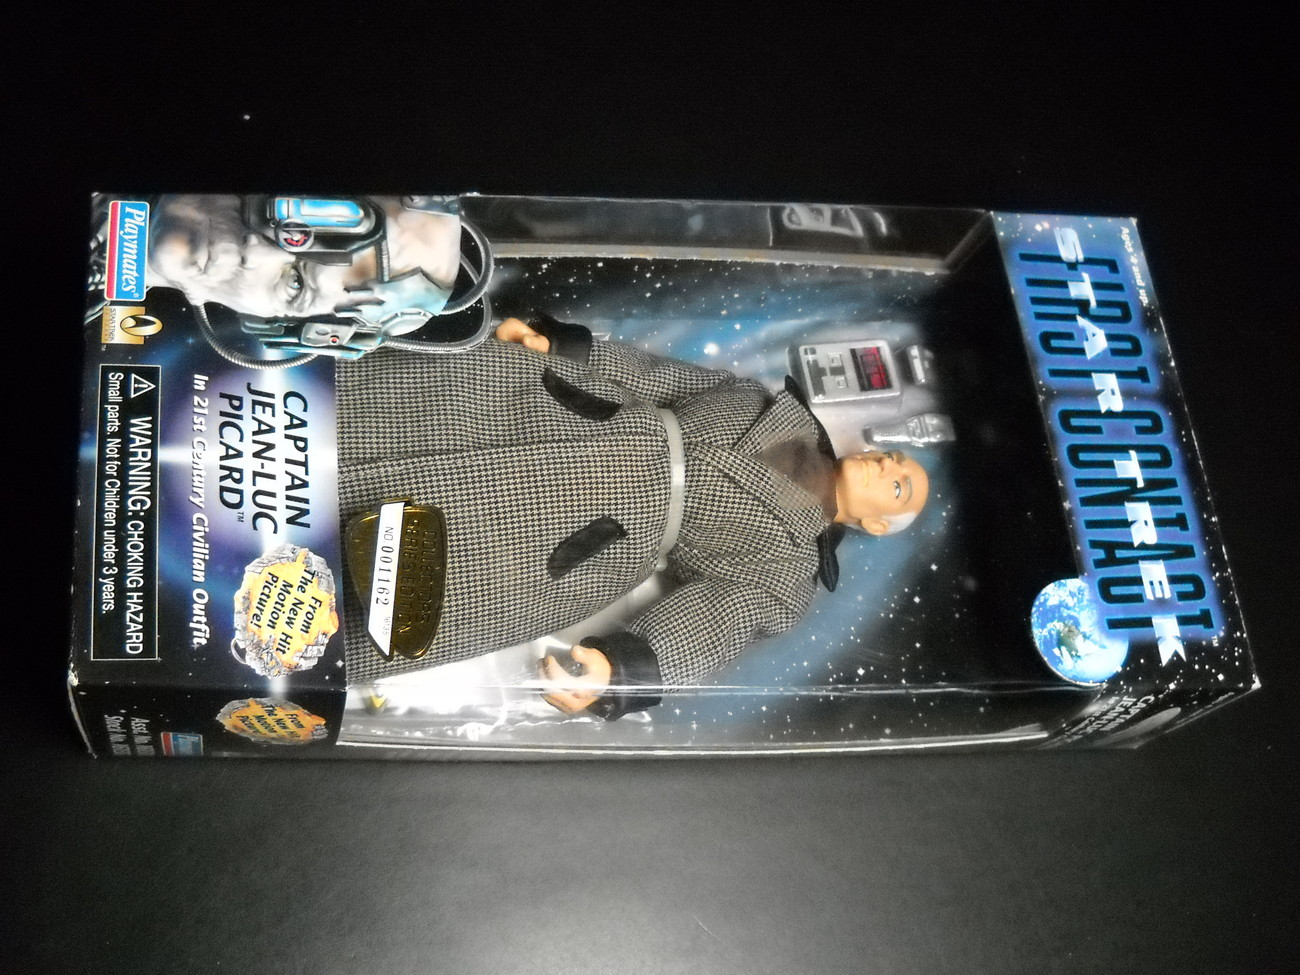 Toy star trek playmates star trek first contact captain jean luc picard in 21st century civilian outfit 1996 9 inch boxed sealed 01